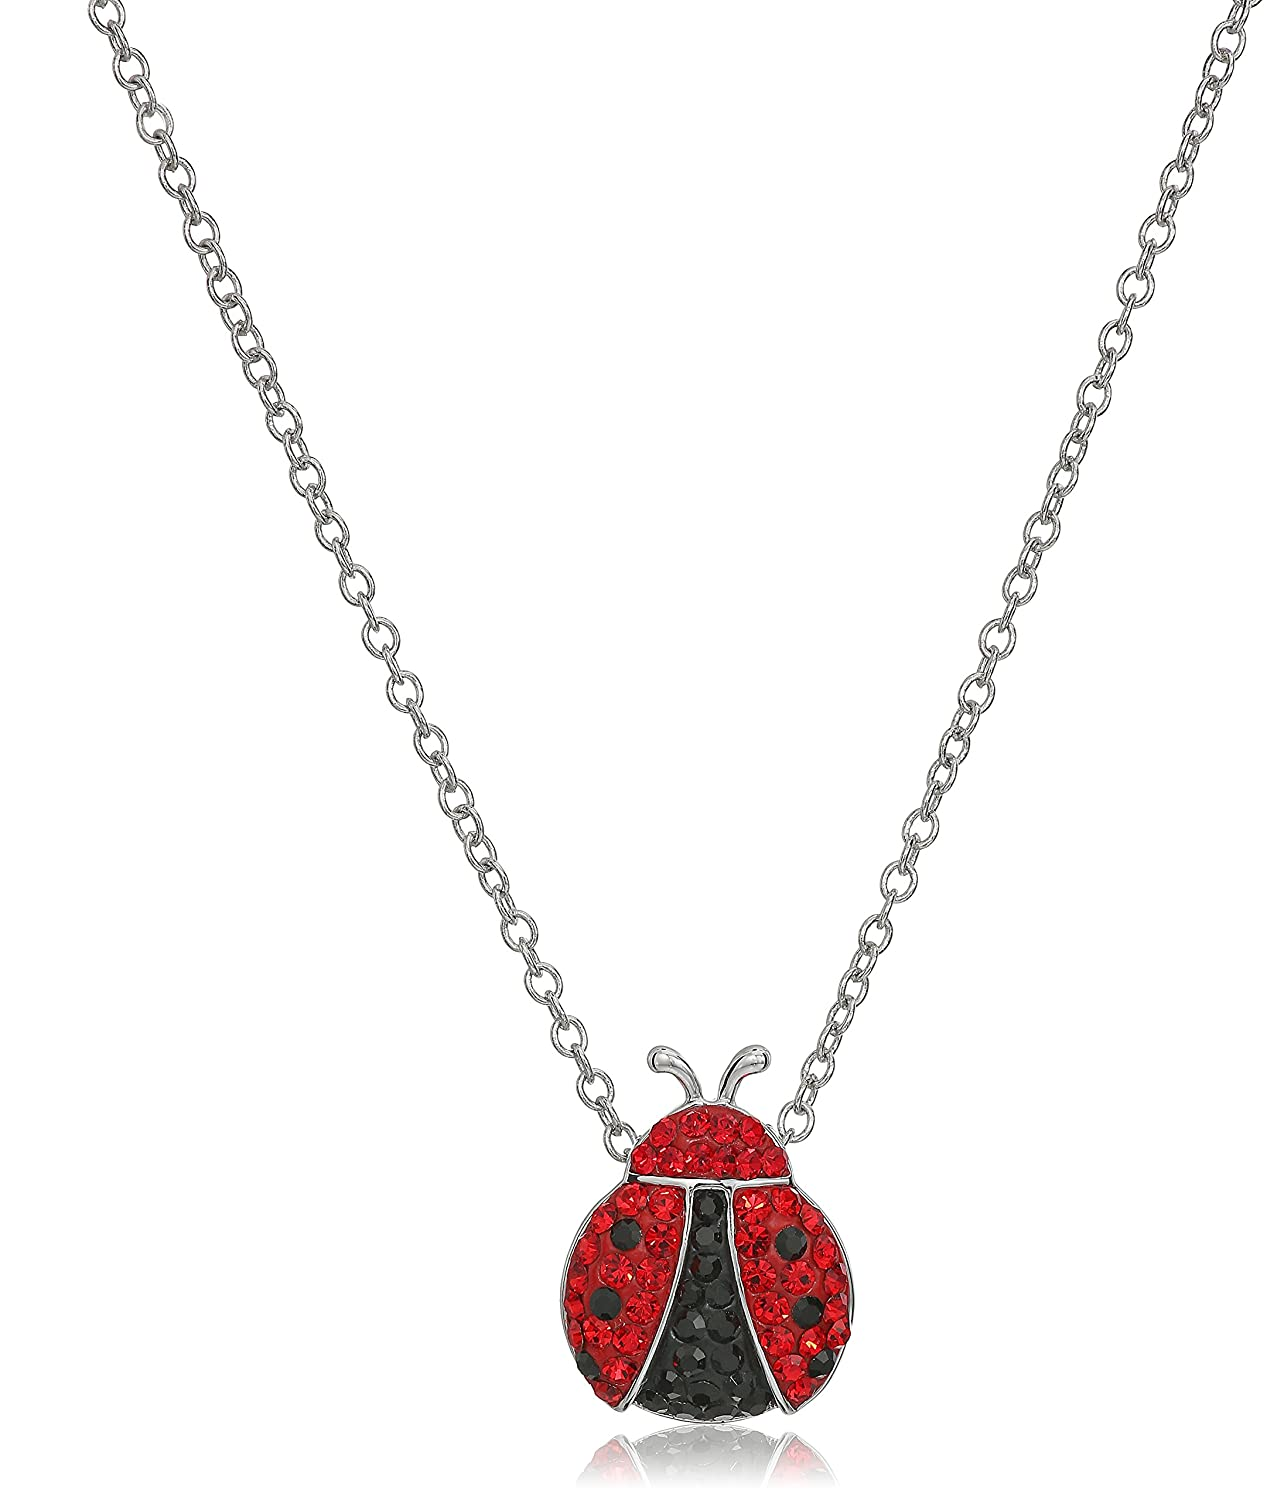 Silver-Plated Crystal Ladybug Pendant Necklace, 18 18 Amazon Collection 24264101